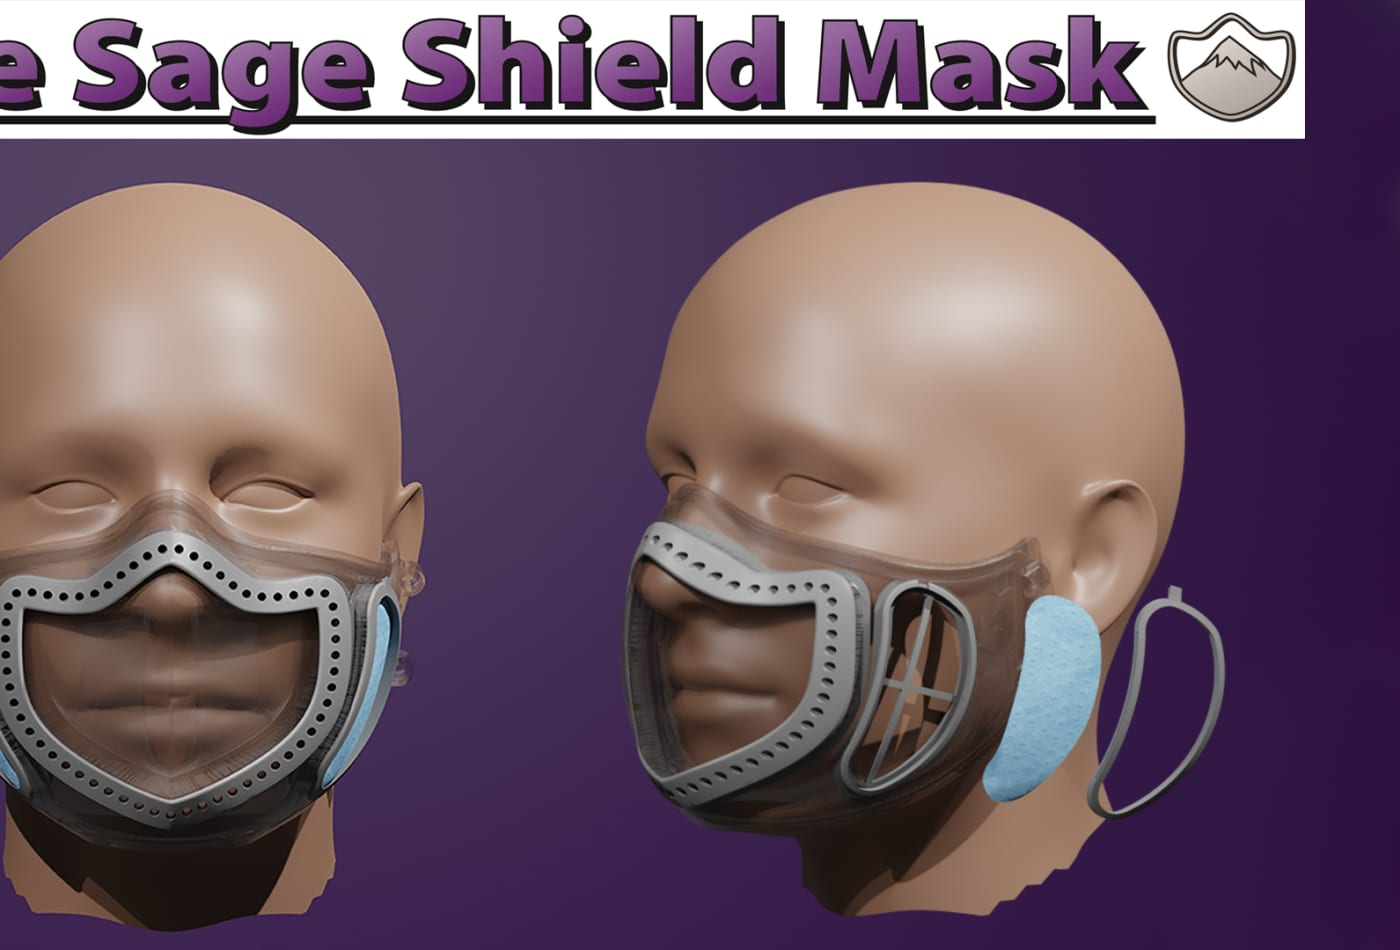 10 innovative face masks designed by young people competing for $1 million XPRIZE—take a look